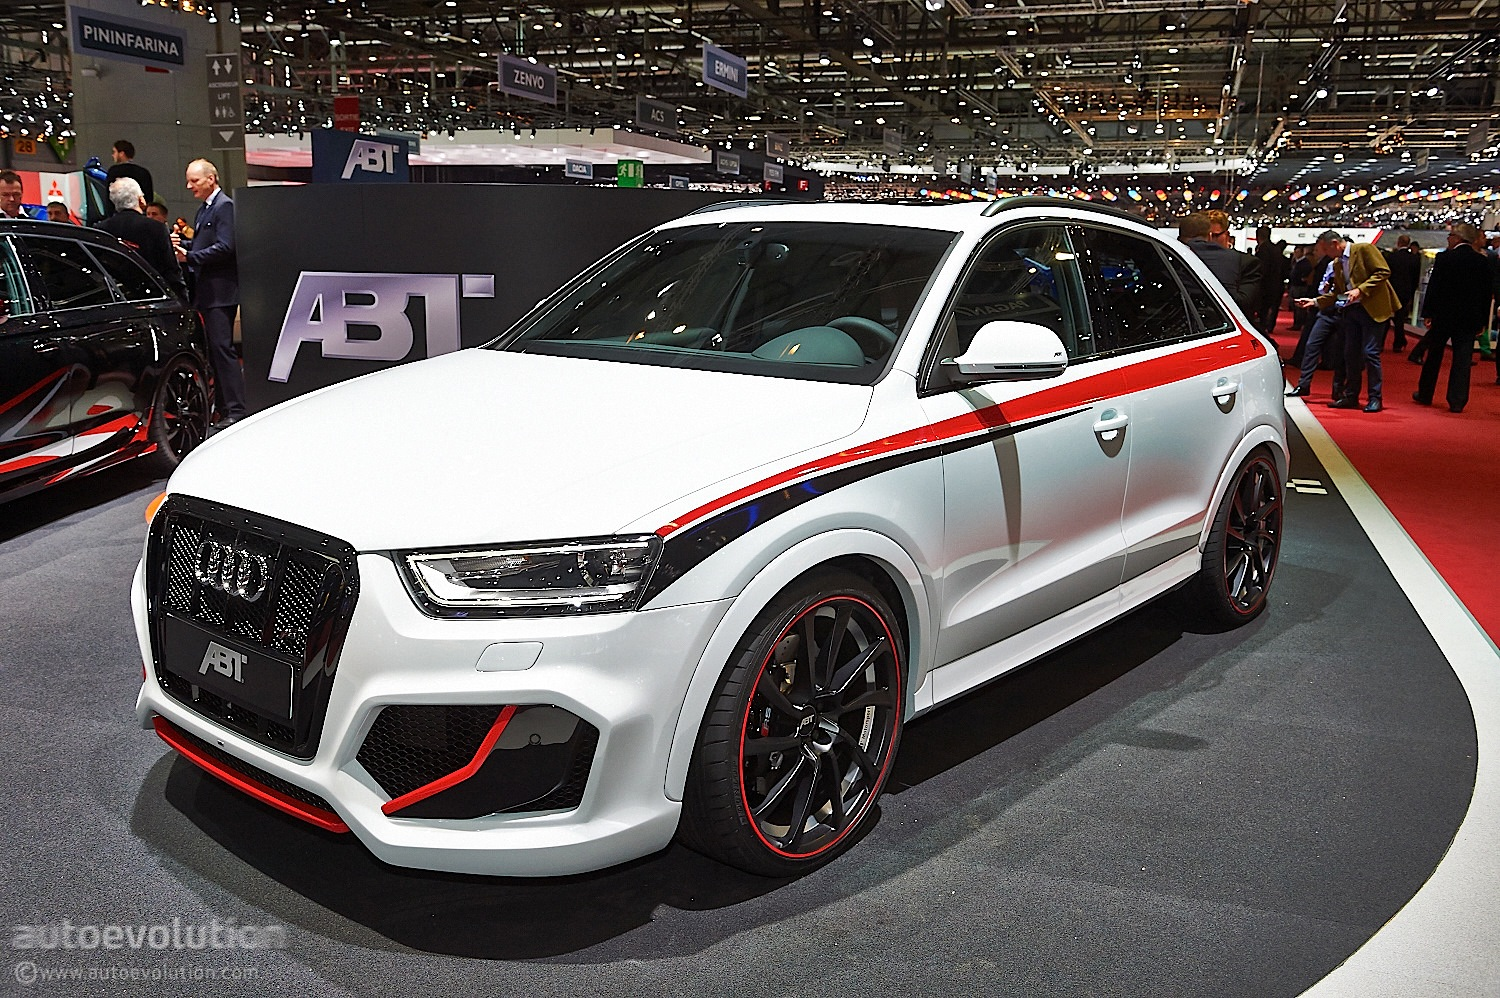 Abt Puts Power Back Into 2 5 Tfsi With Audi Rs Q3 Tuning Project